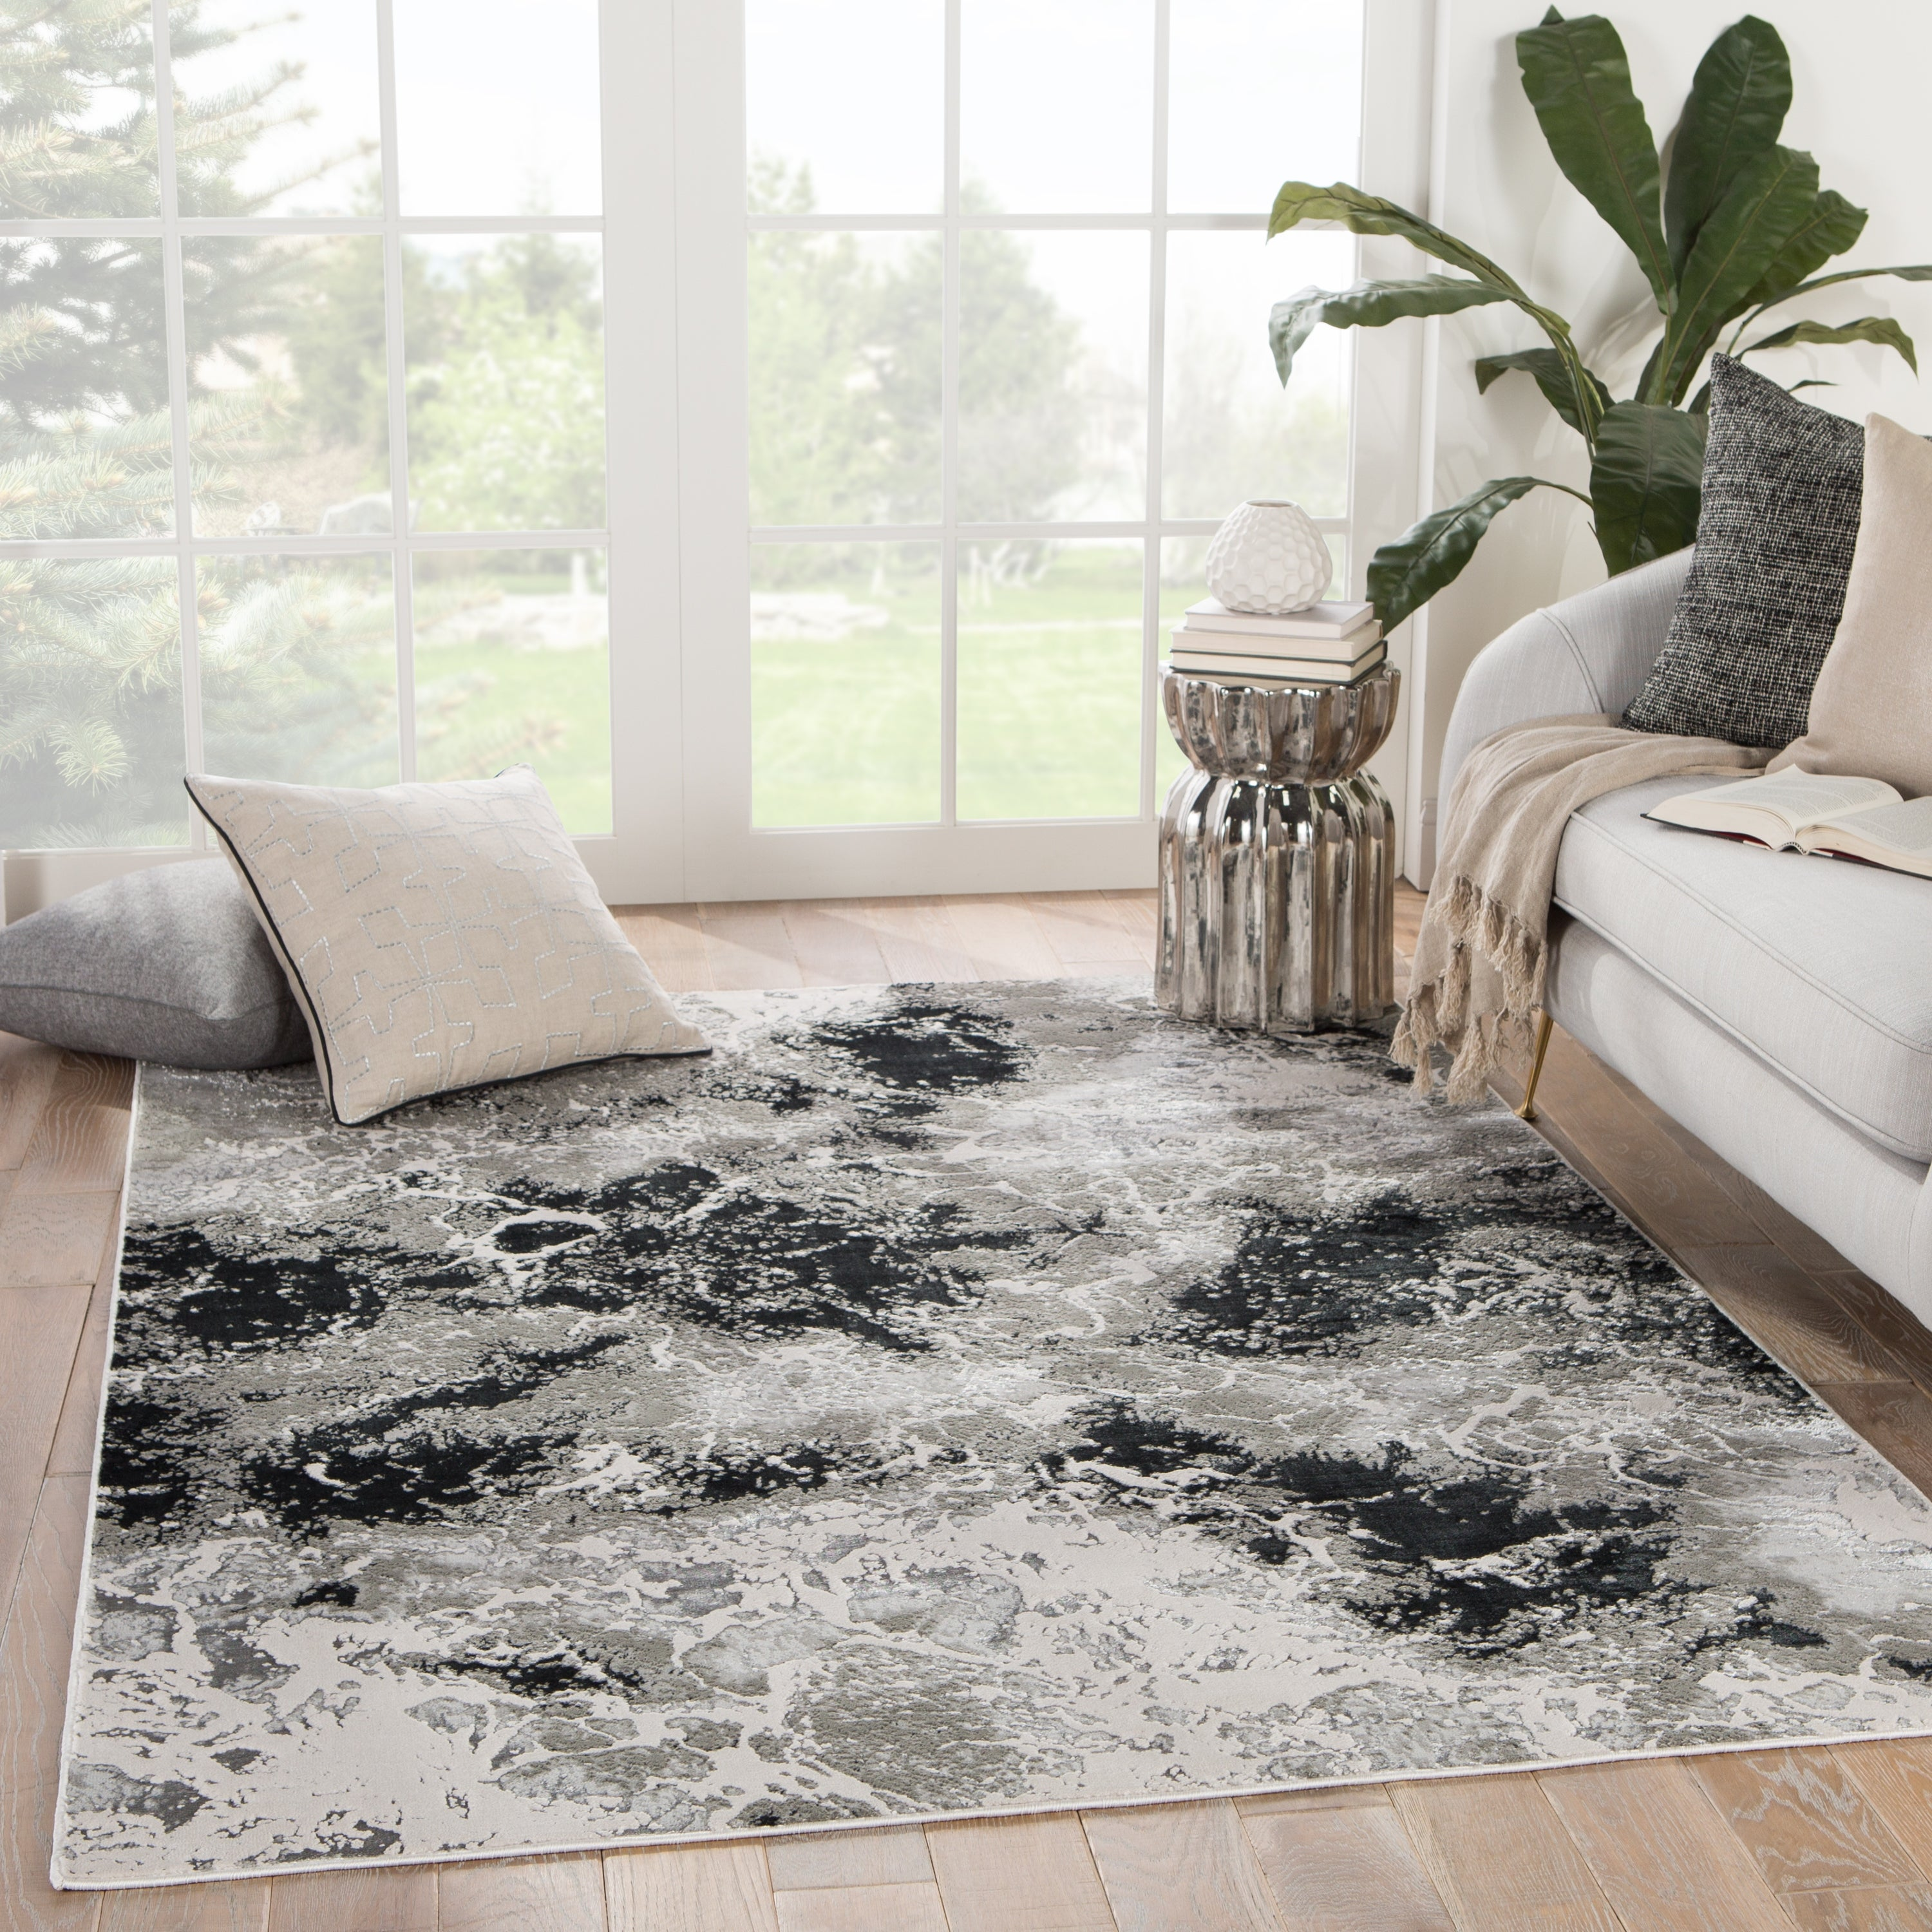 Silver Orchid Pugo Abstract Black Gray Area Rug On Sale Overstock 30244266 2 2 X 8